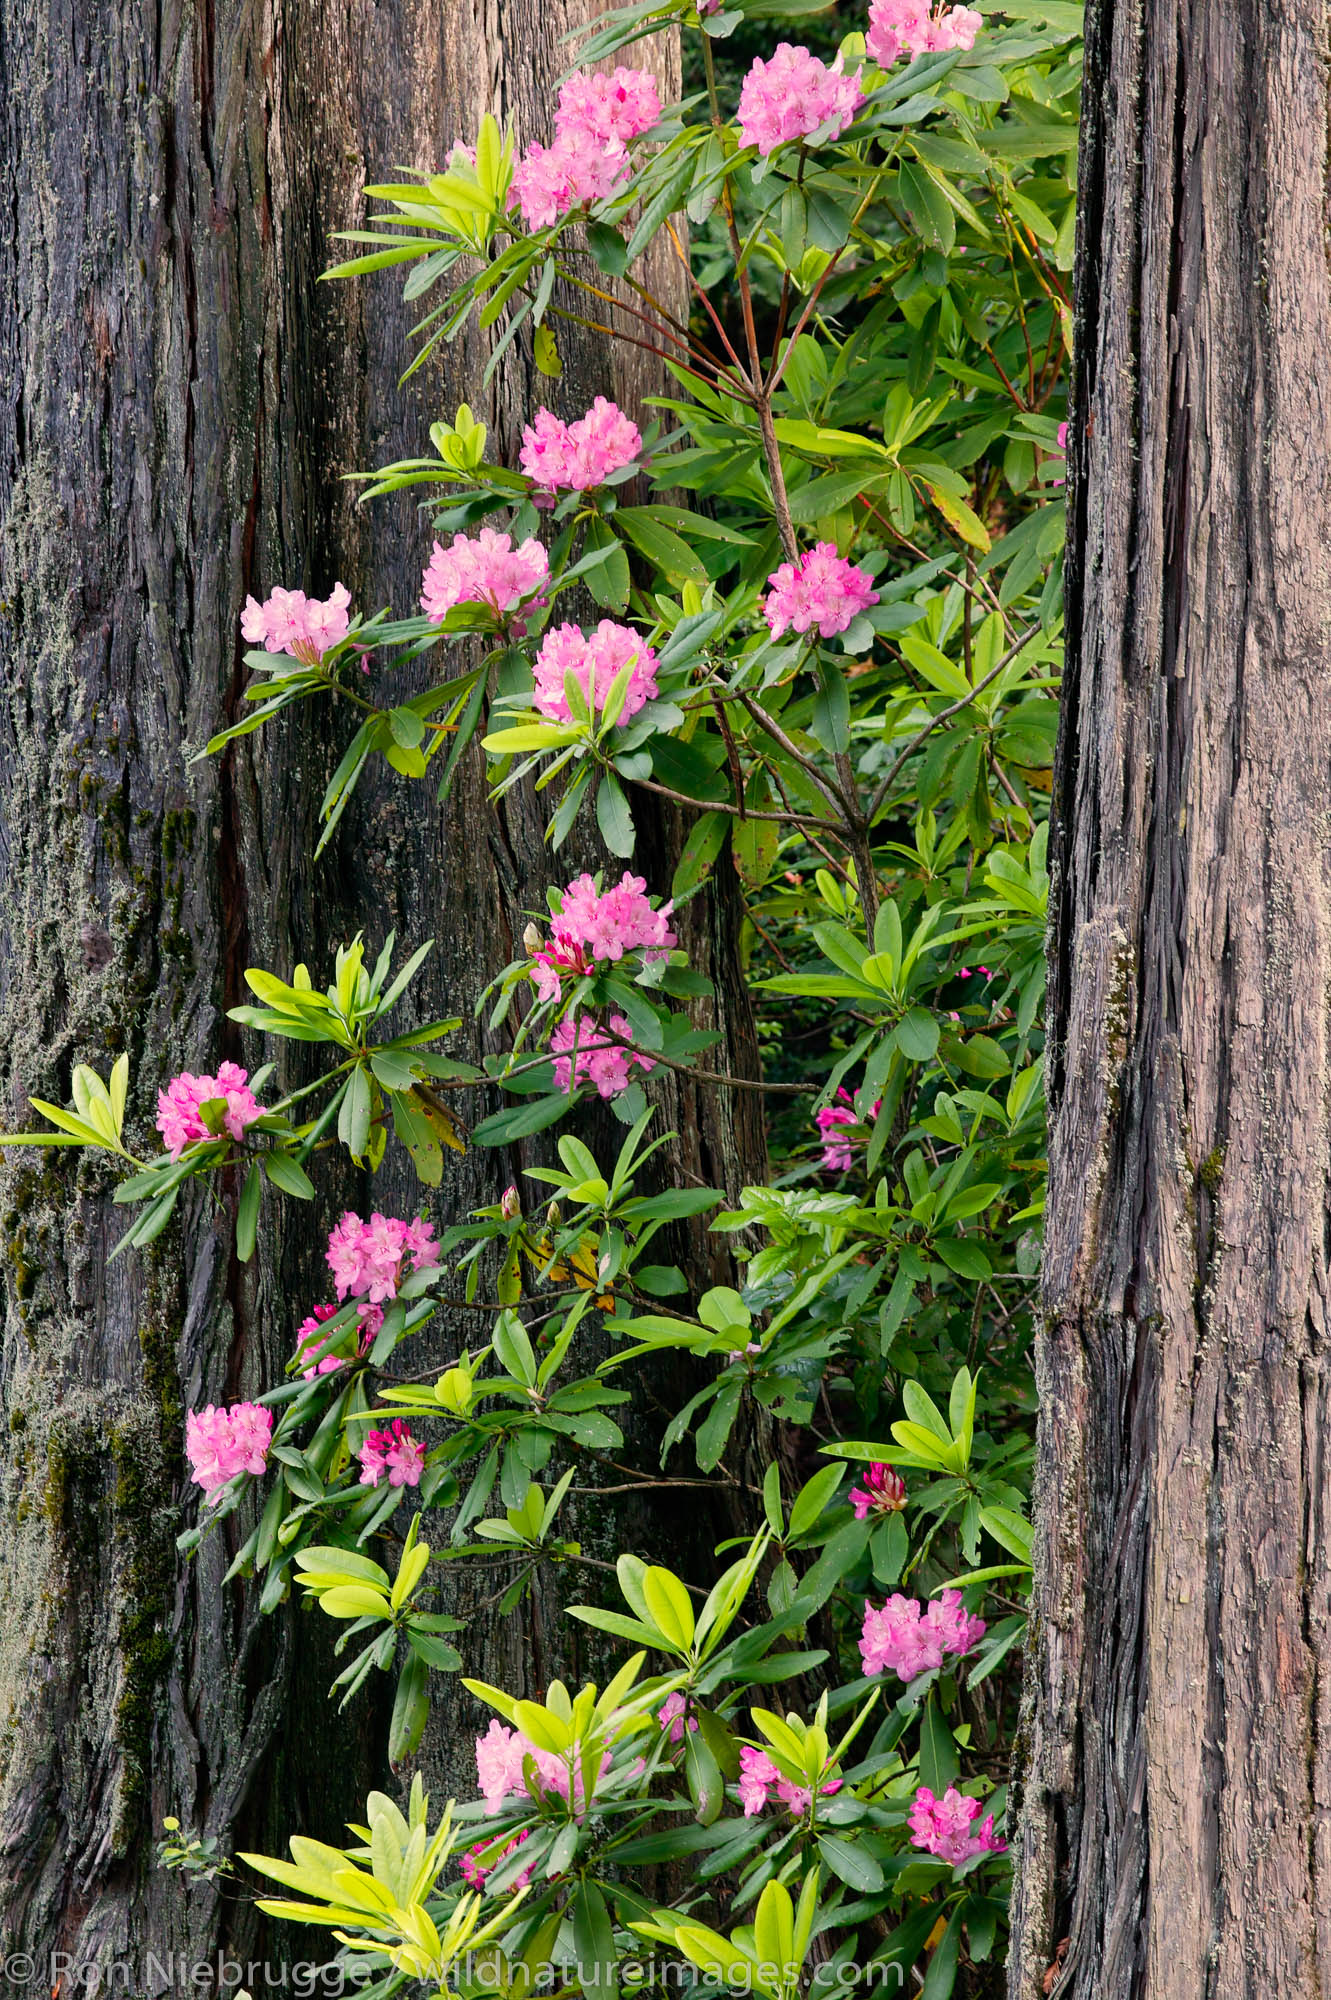 Rhododendrons in the Del Norte Coast Redwoods State Park, Redwood National and State Parks, California.